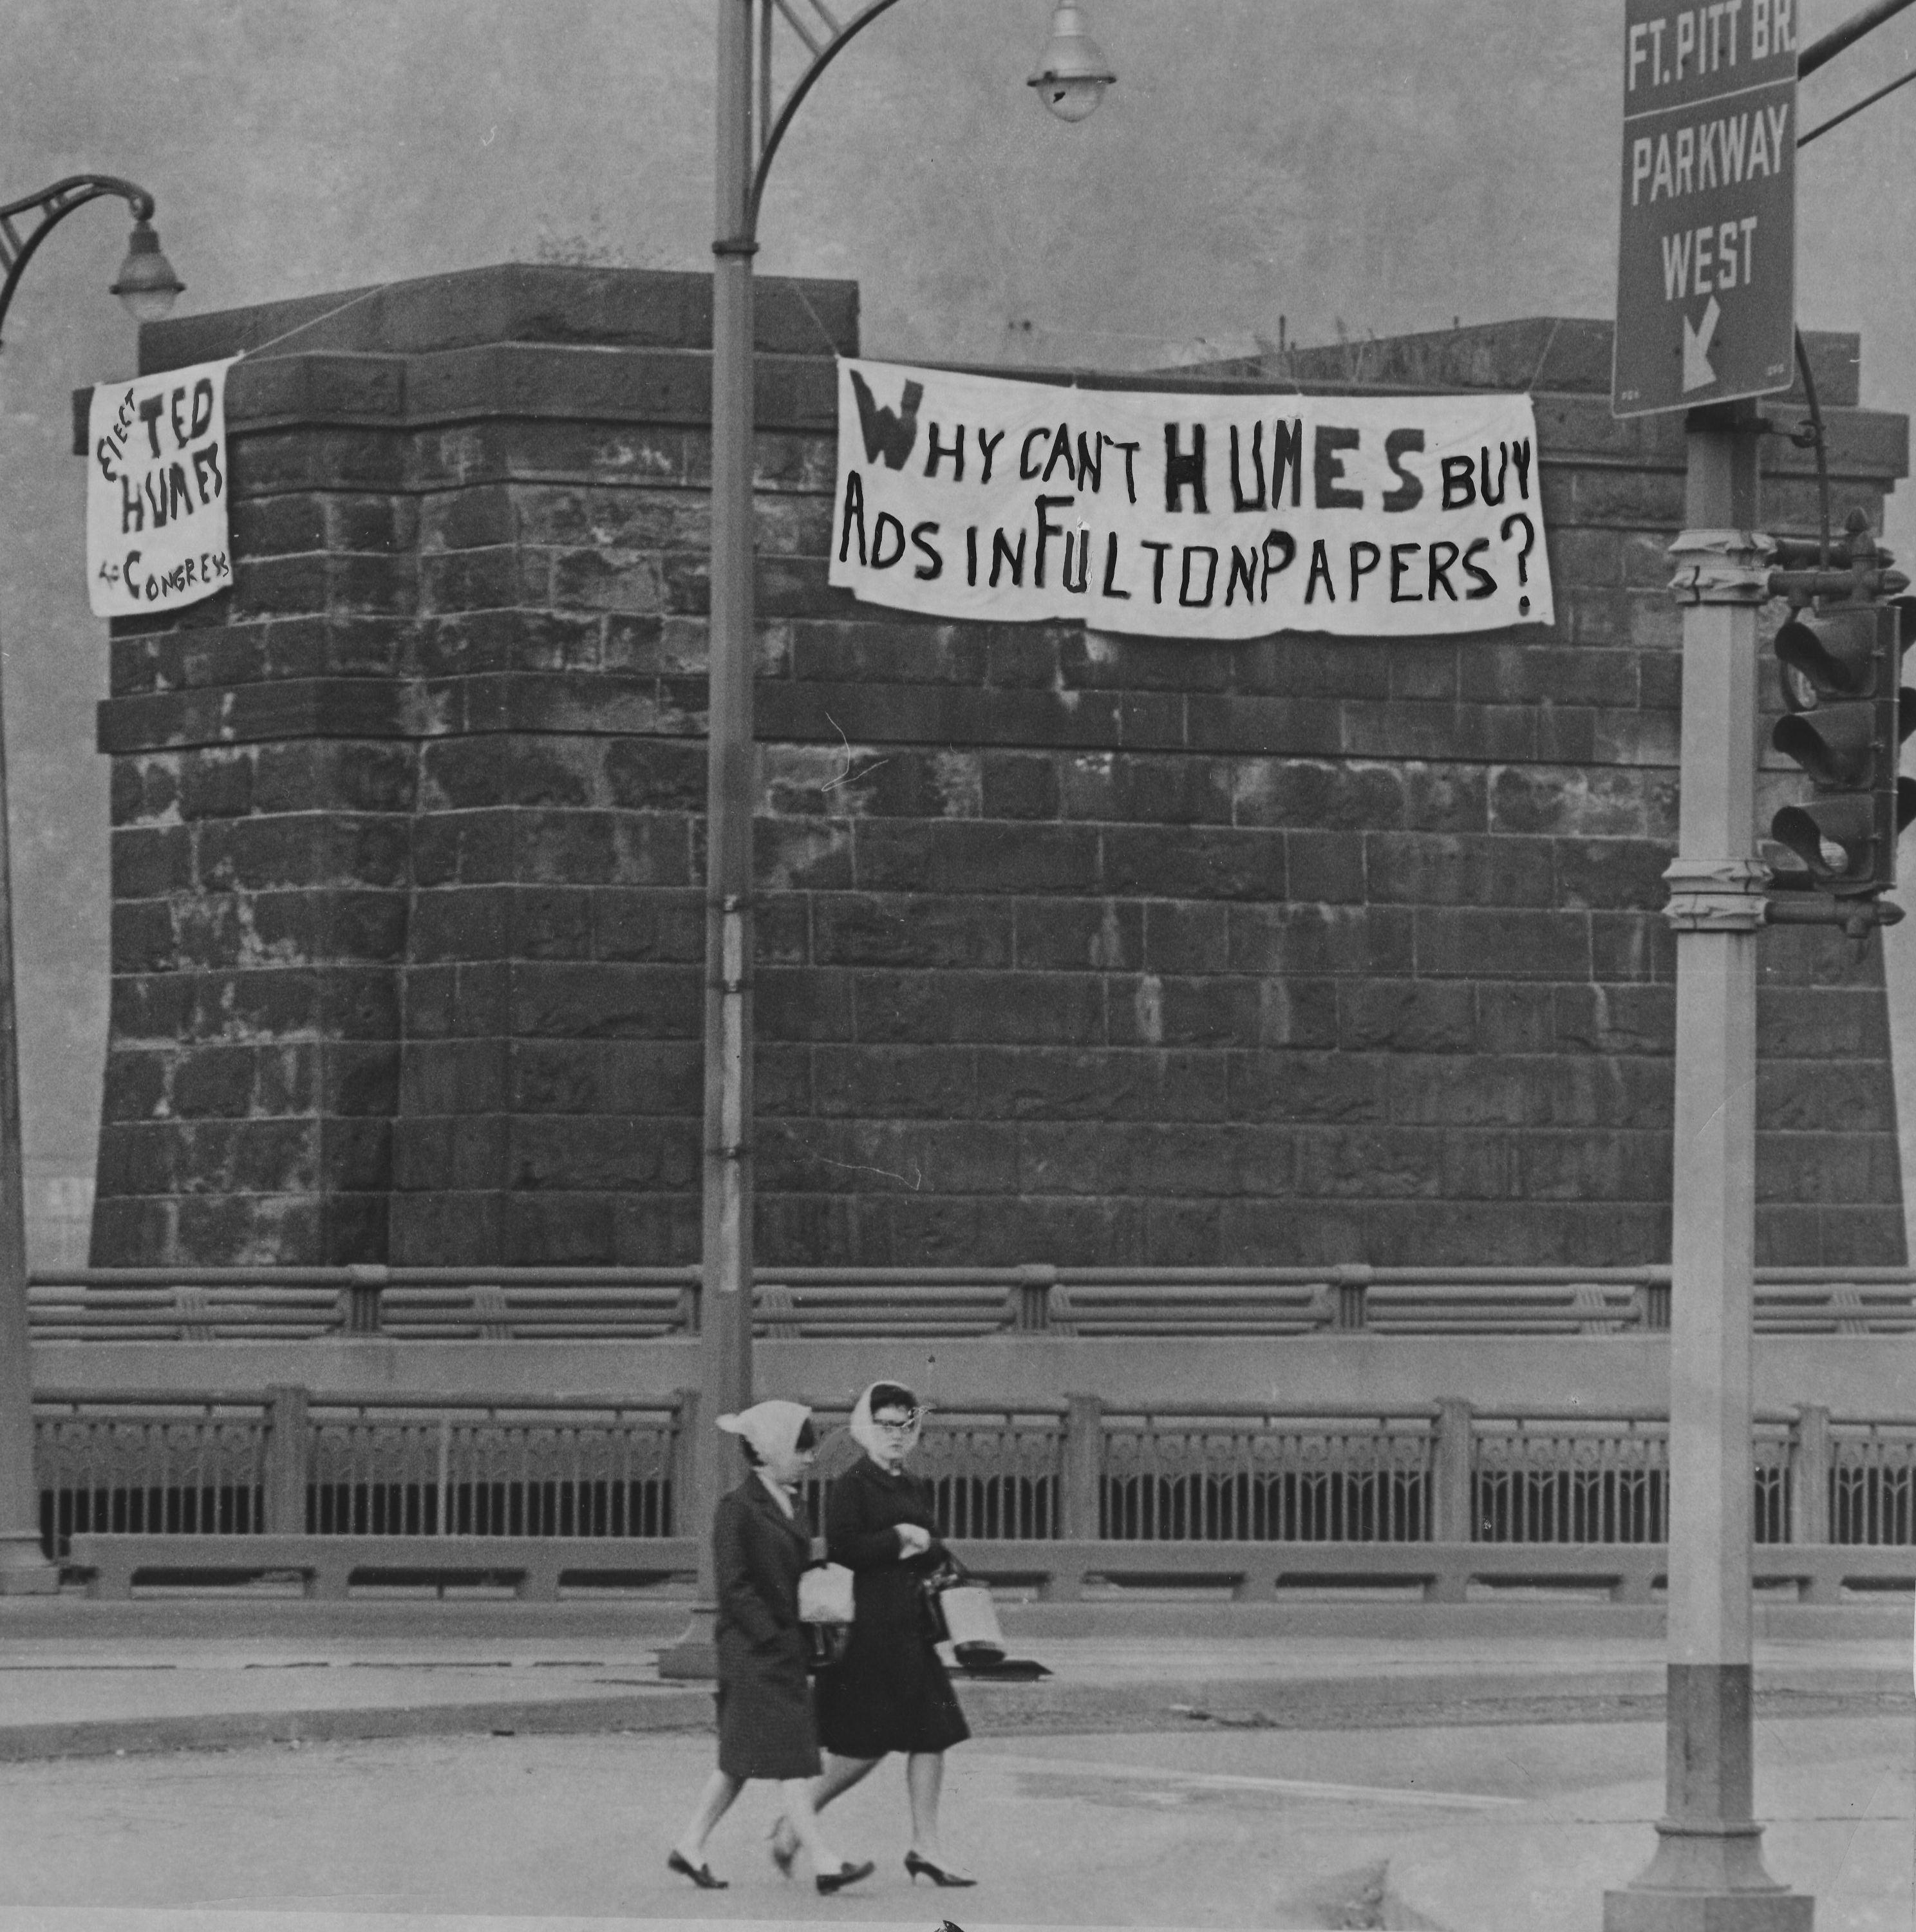 This May 11, 1966 picture shows a large banner hung along a former pier of the Wabash Bridge in the Monongahela River. The outdoor ad referred to Theodore Humes, who sought the Republication nomination in the 27th Congressional District against Rep. James Fulton, who owned the pier. Mr. Humes had alleged that several suburban weekly newspapers Fulton owned refused to accept his political ads.